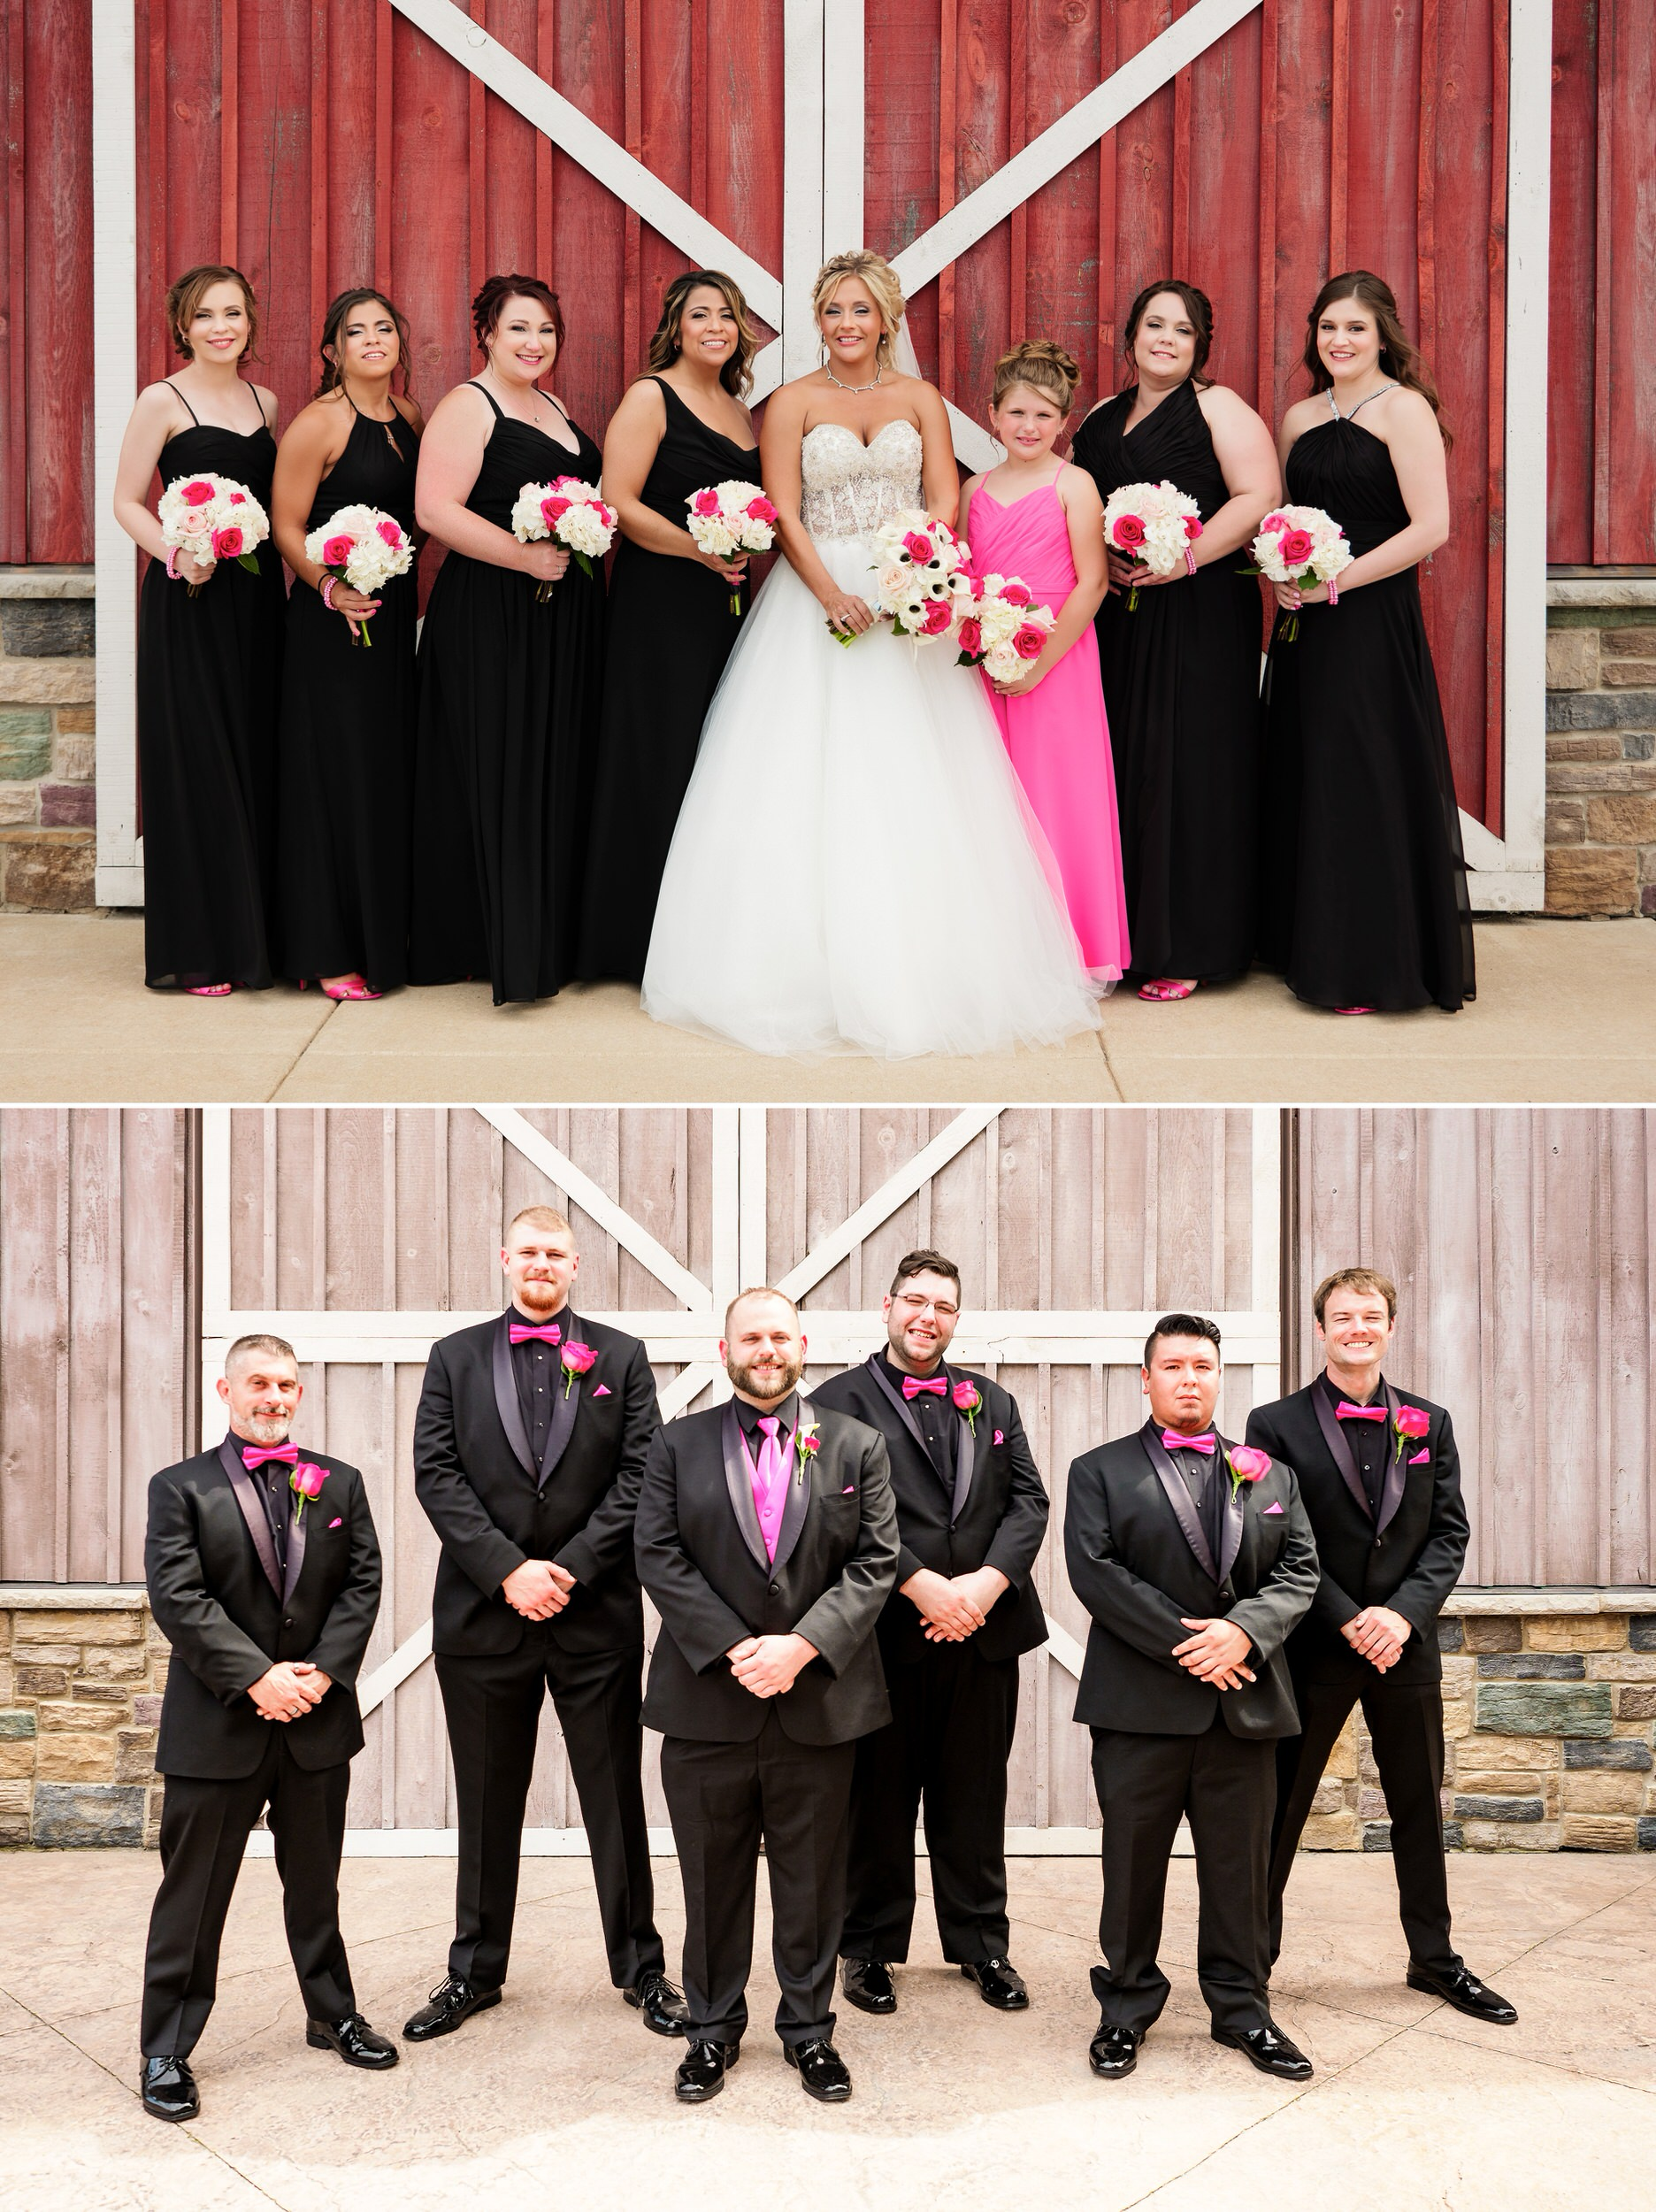 Bridesmaids and groomsmen in front of the CLO barn doors.